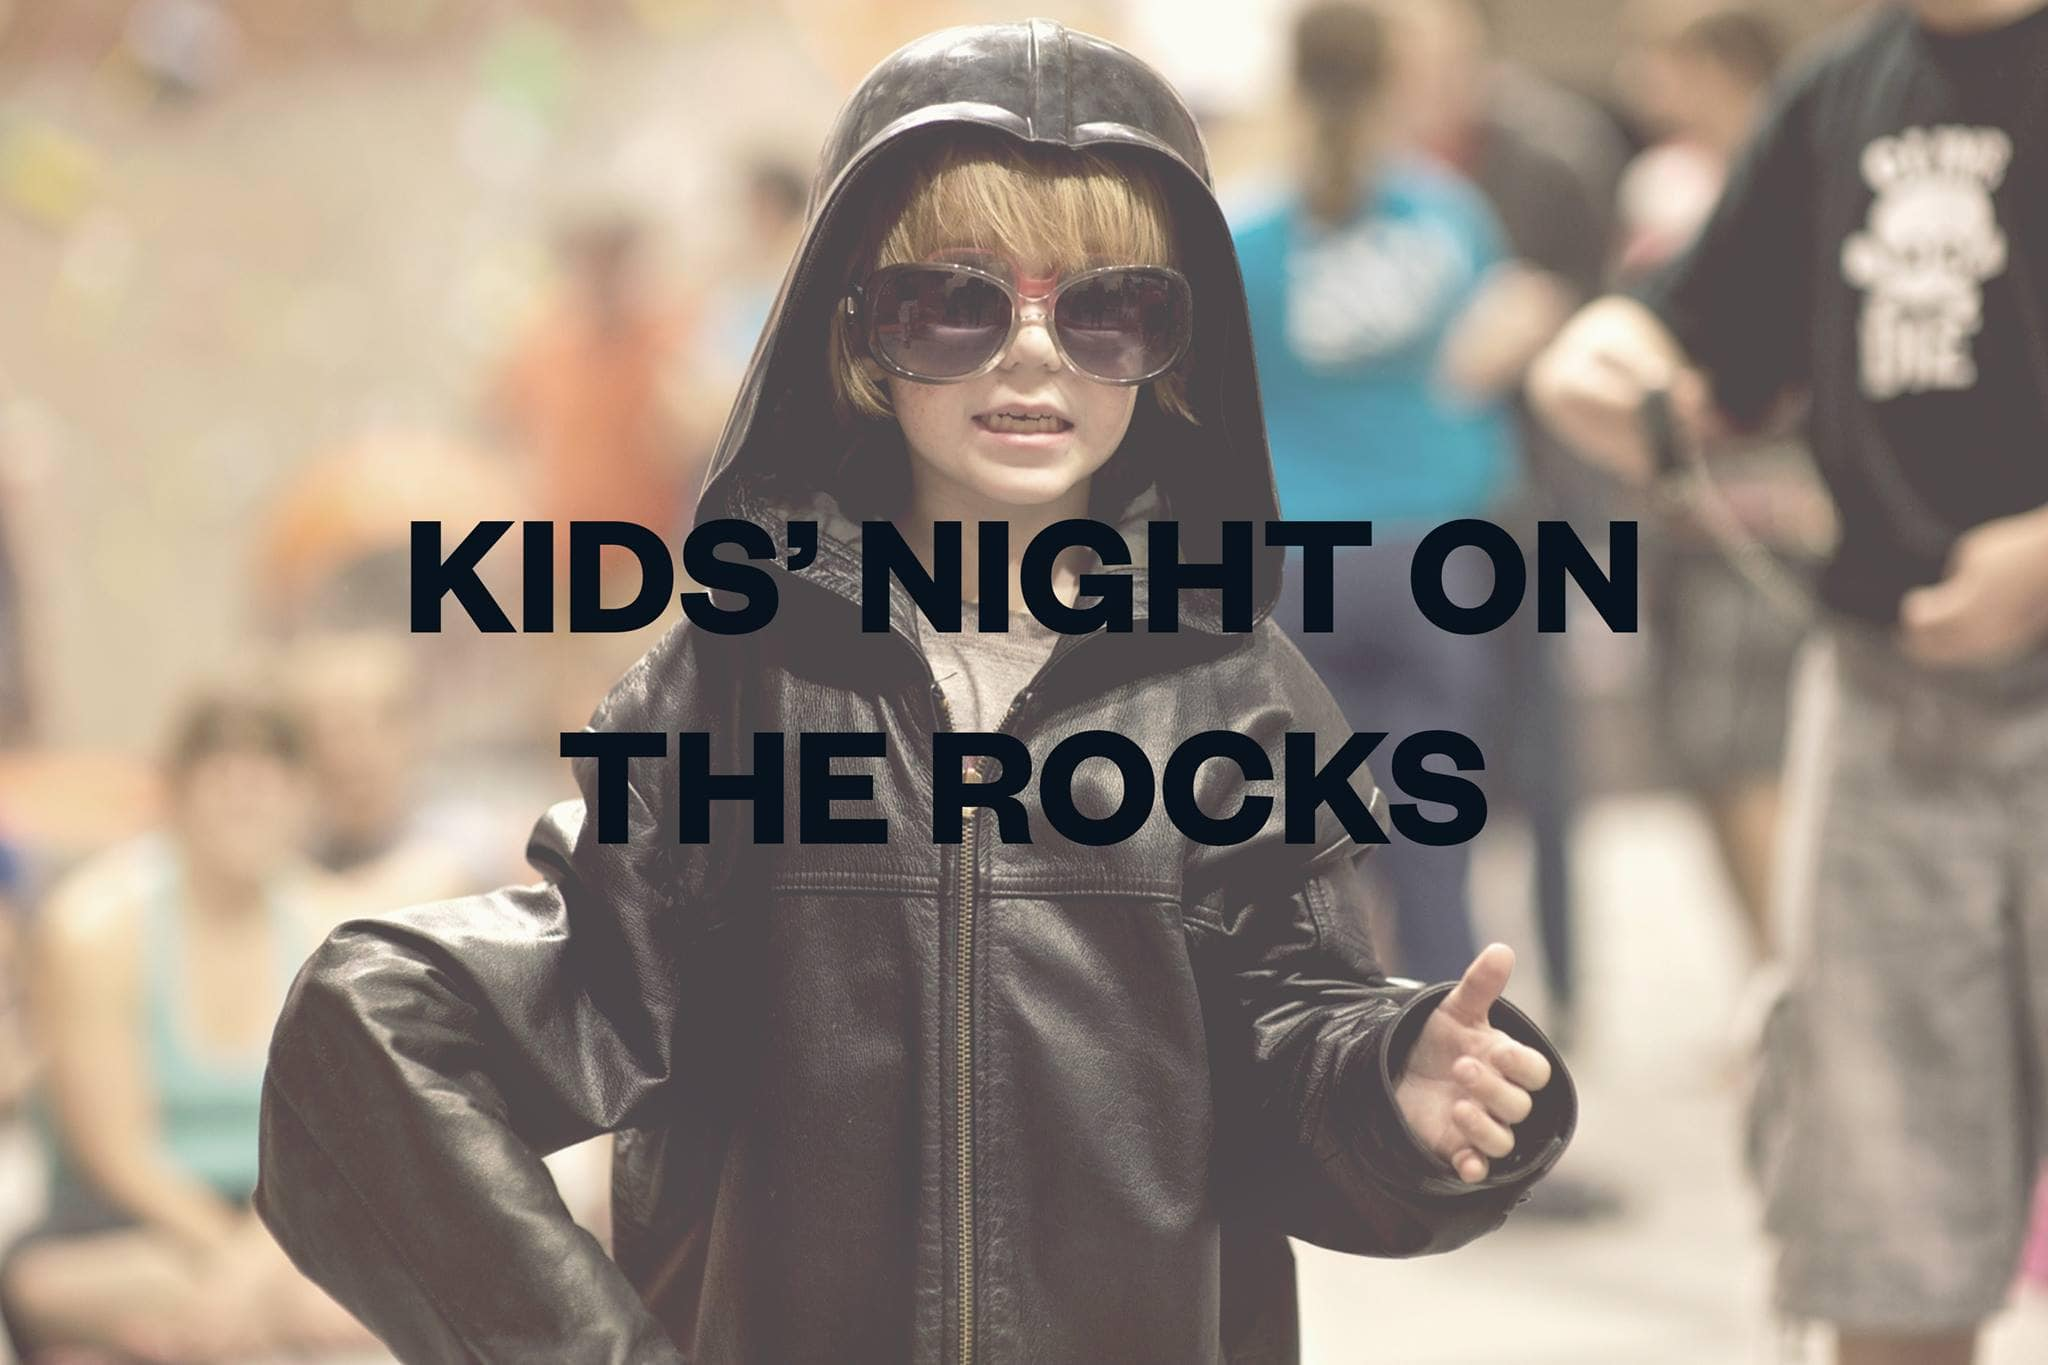 Friday Night on the Rocks